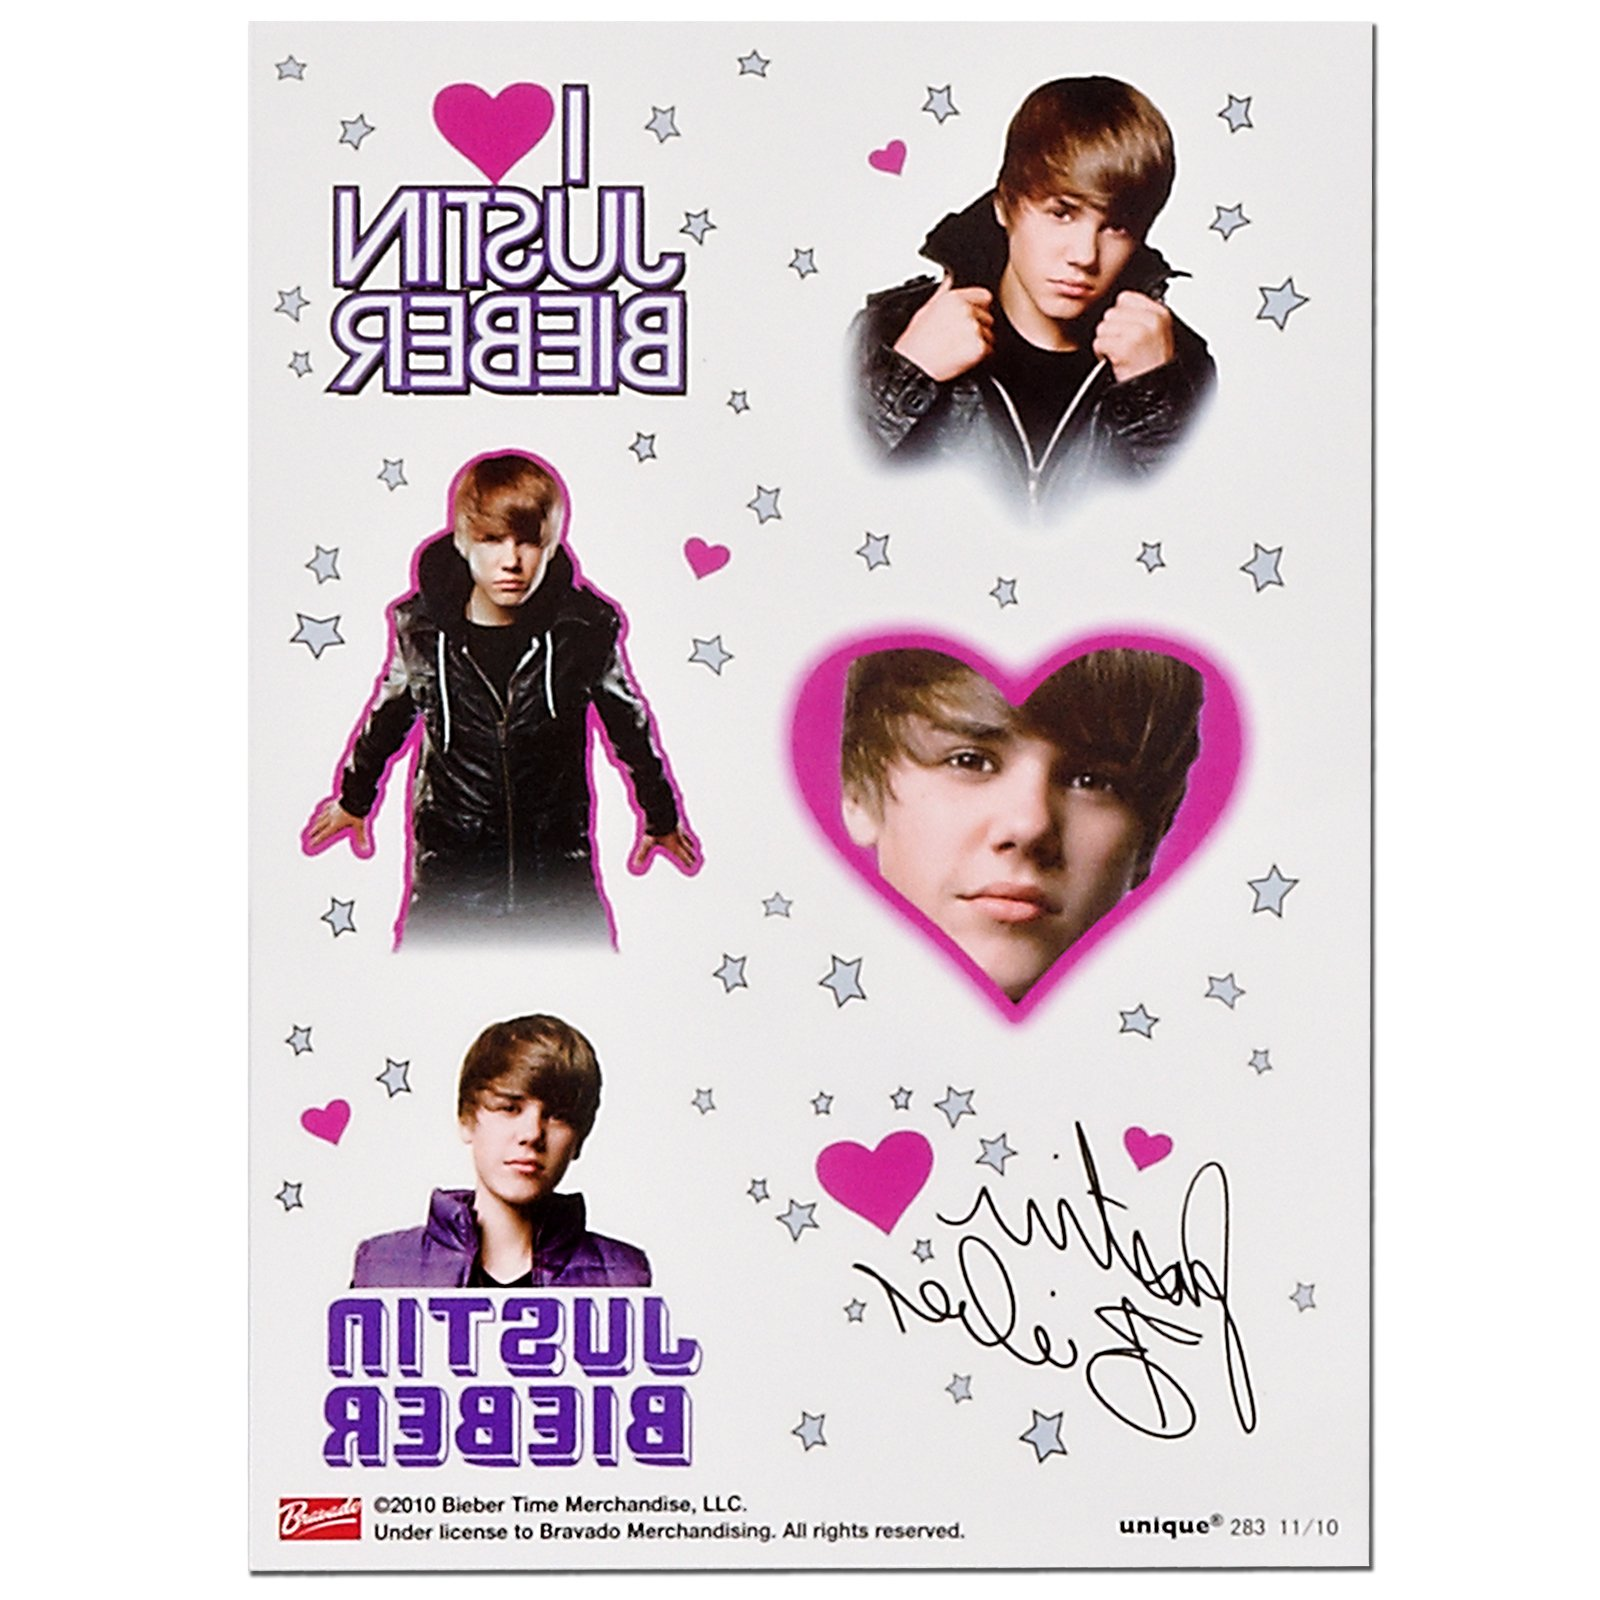 Justin Bieber Tattoo Sheets (4 count)